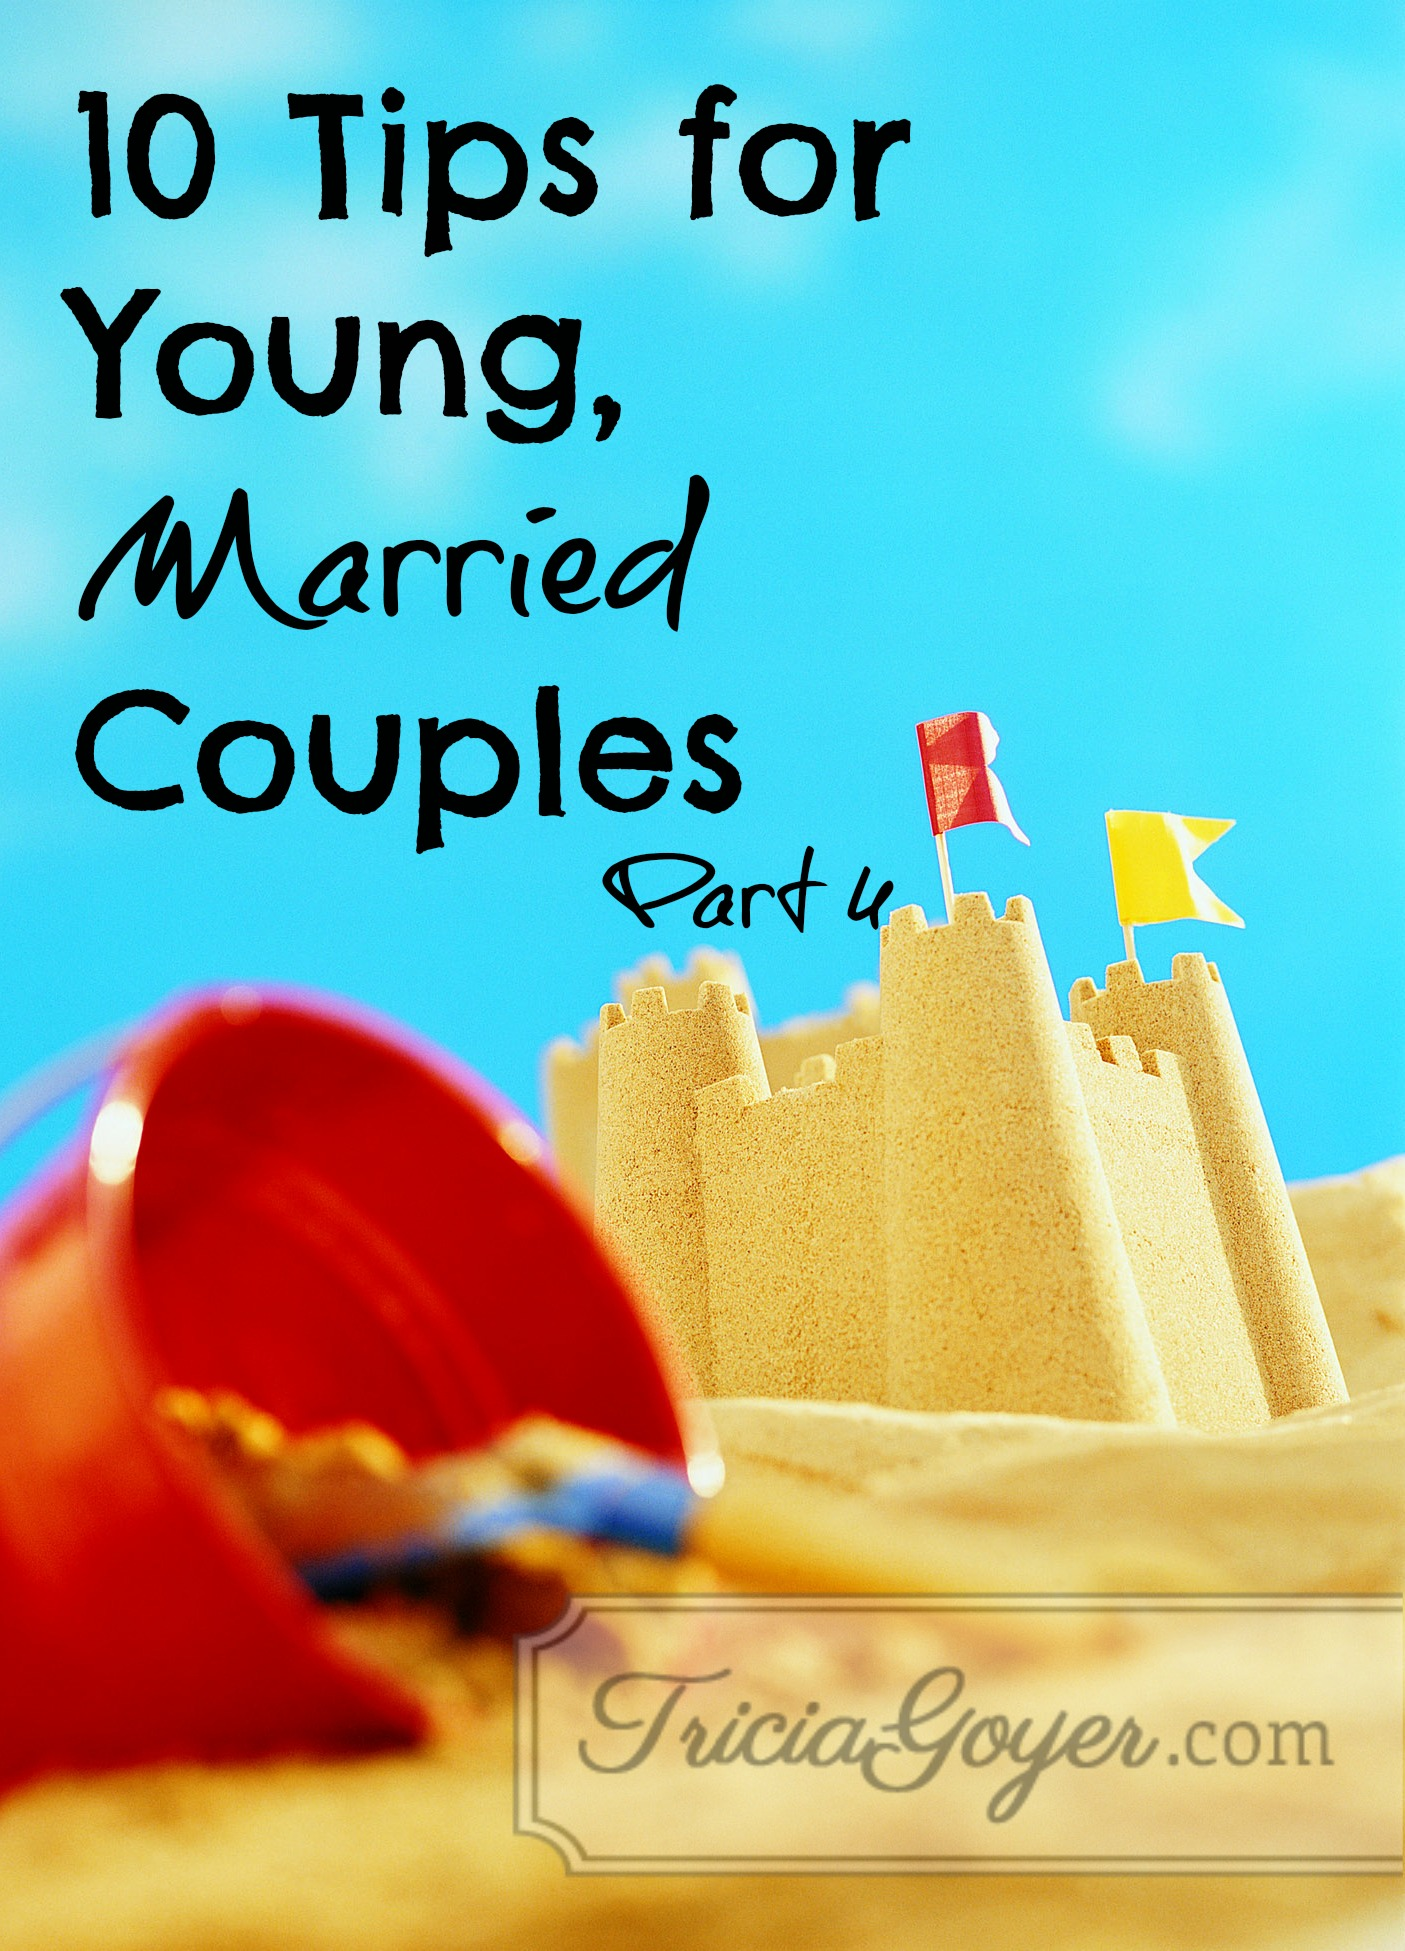 Tips for Young, Married Couples, Part 4